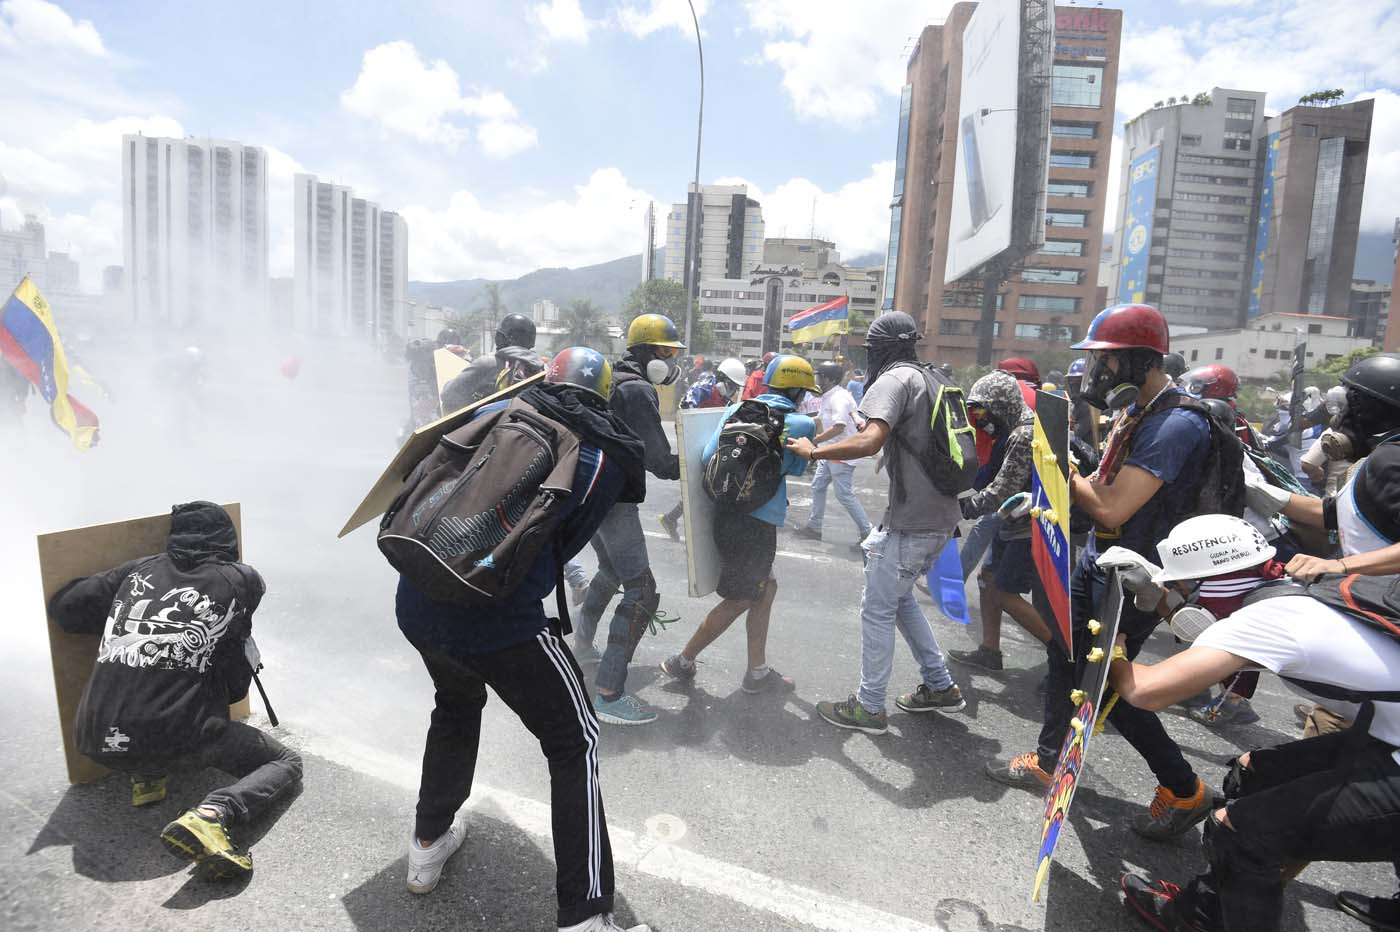 Opposition activists clash with riot police whilst protesting against the government of President Nicolas Maduro along the Francisco Fajardo motorway in Caracas on June 19, 2017. Venezuela's Supreme Court on Friday rejected a bid to put on trial several senior judges accused of favoring embattled President Nicolas Maduro as he clings to power in the face of deadly unrest. / AFP PHOTO / JUAN BARRETO